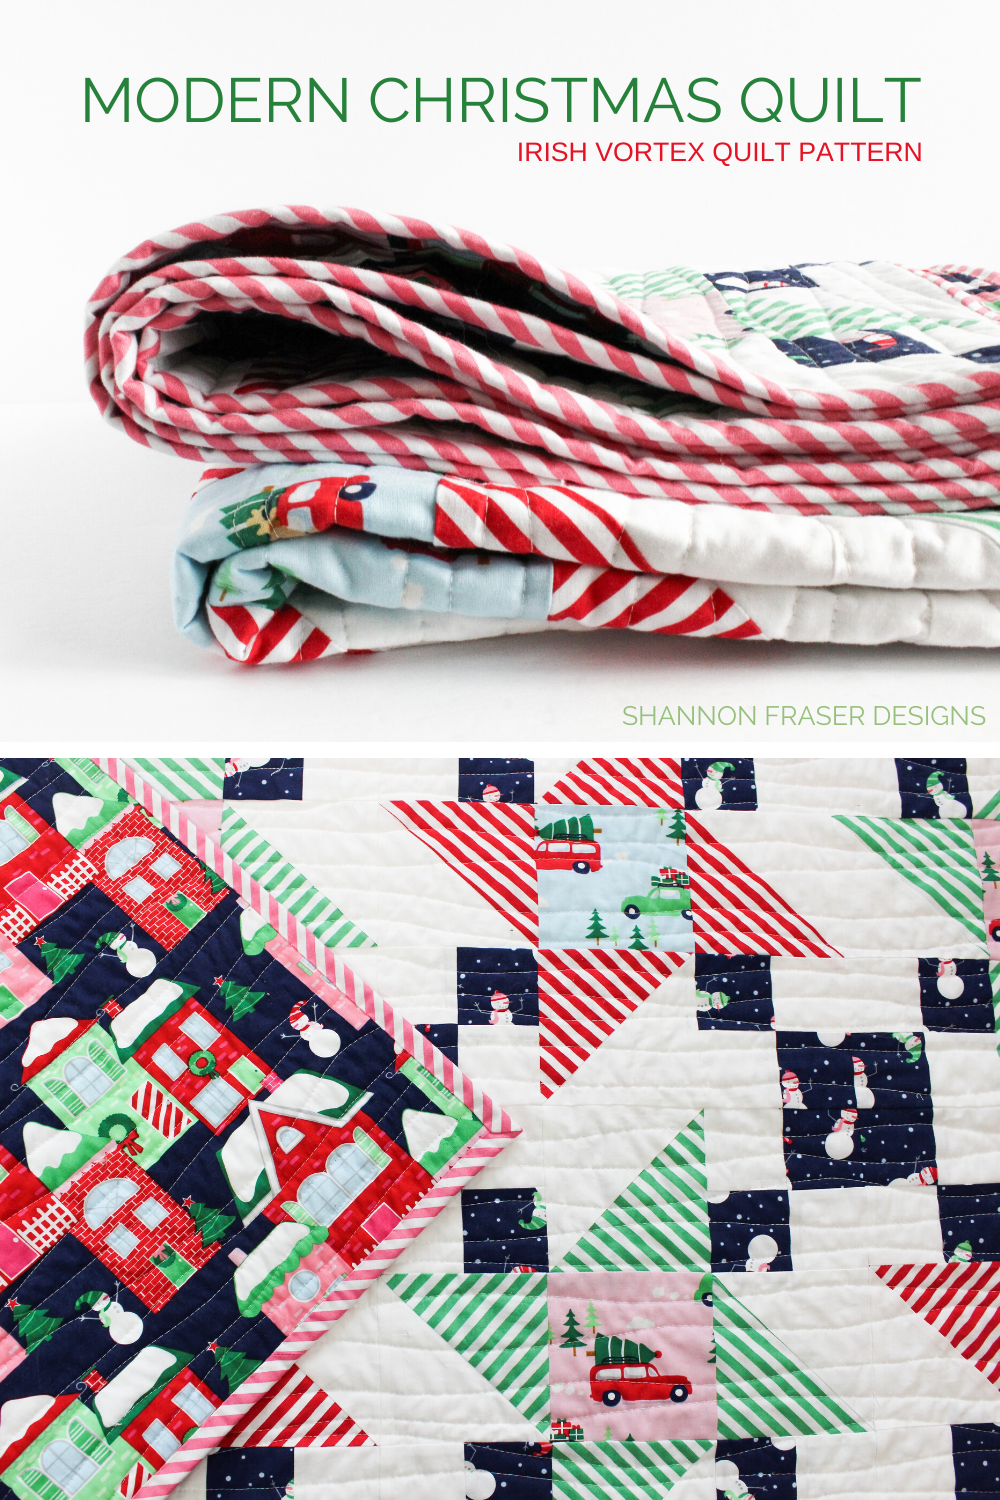 Modern Christmas Quilt in red, green, navy, pink and white | Home for the Holidays Irish Vortex quilt | Shannon Fraser Designs #holidayquilt